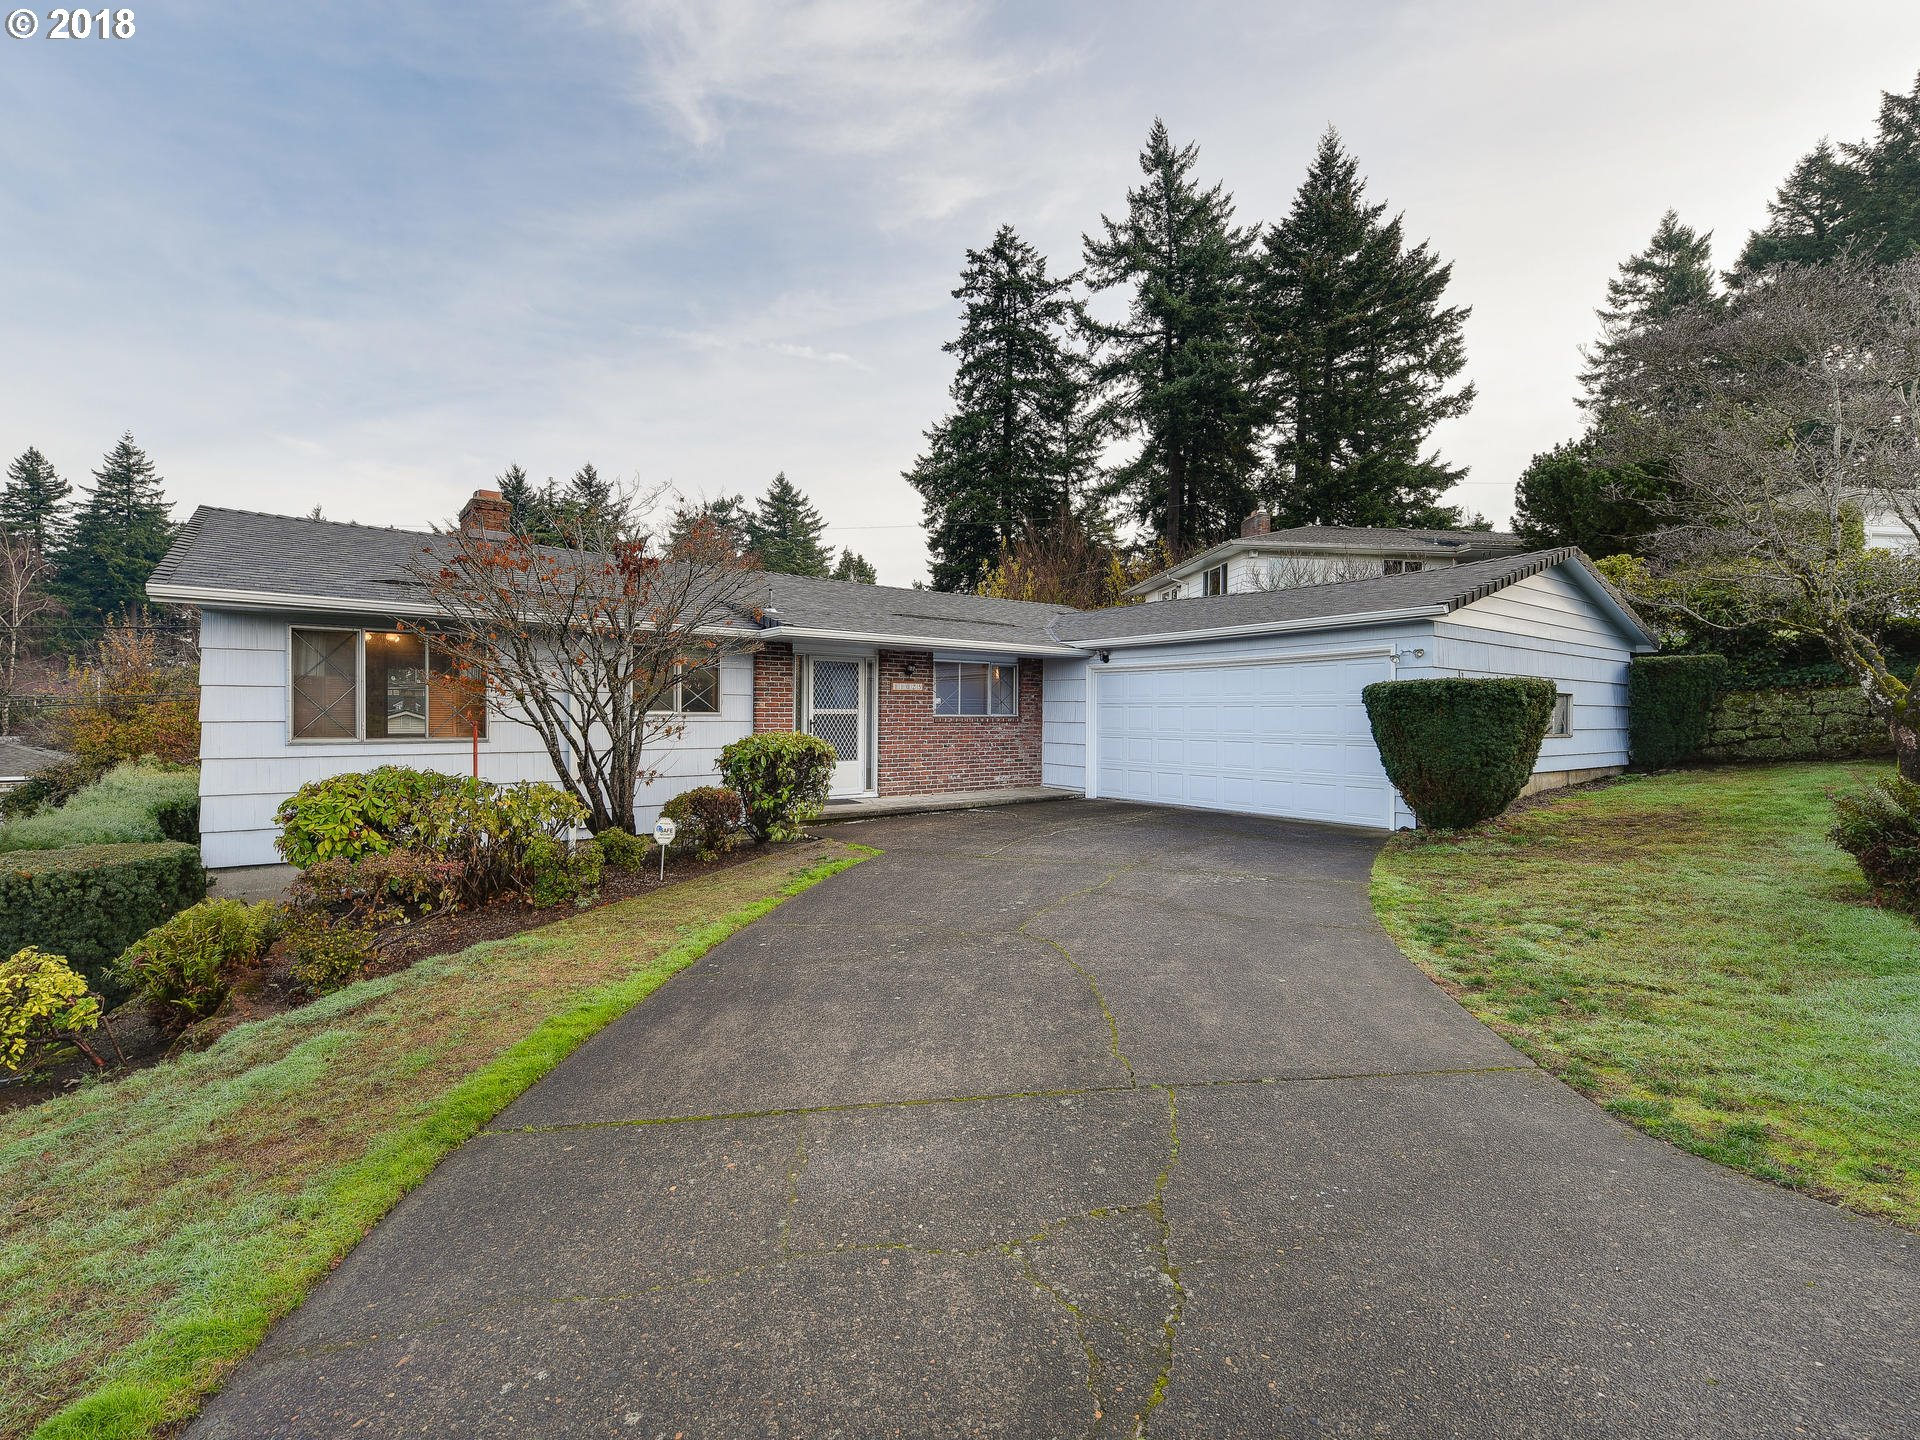 2600 sq. ft 5 bedrooms 3 bathrooms  House For Sale,Portland, OR